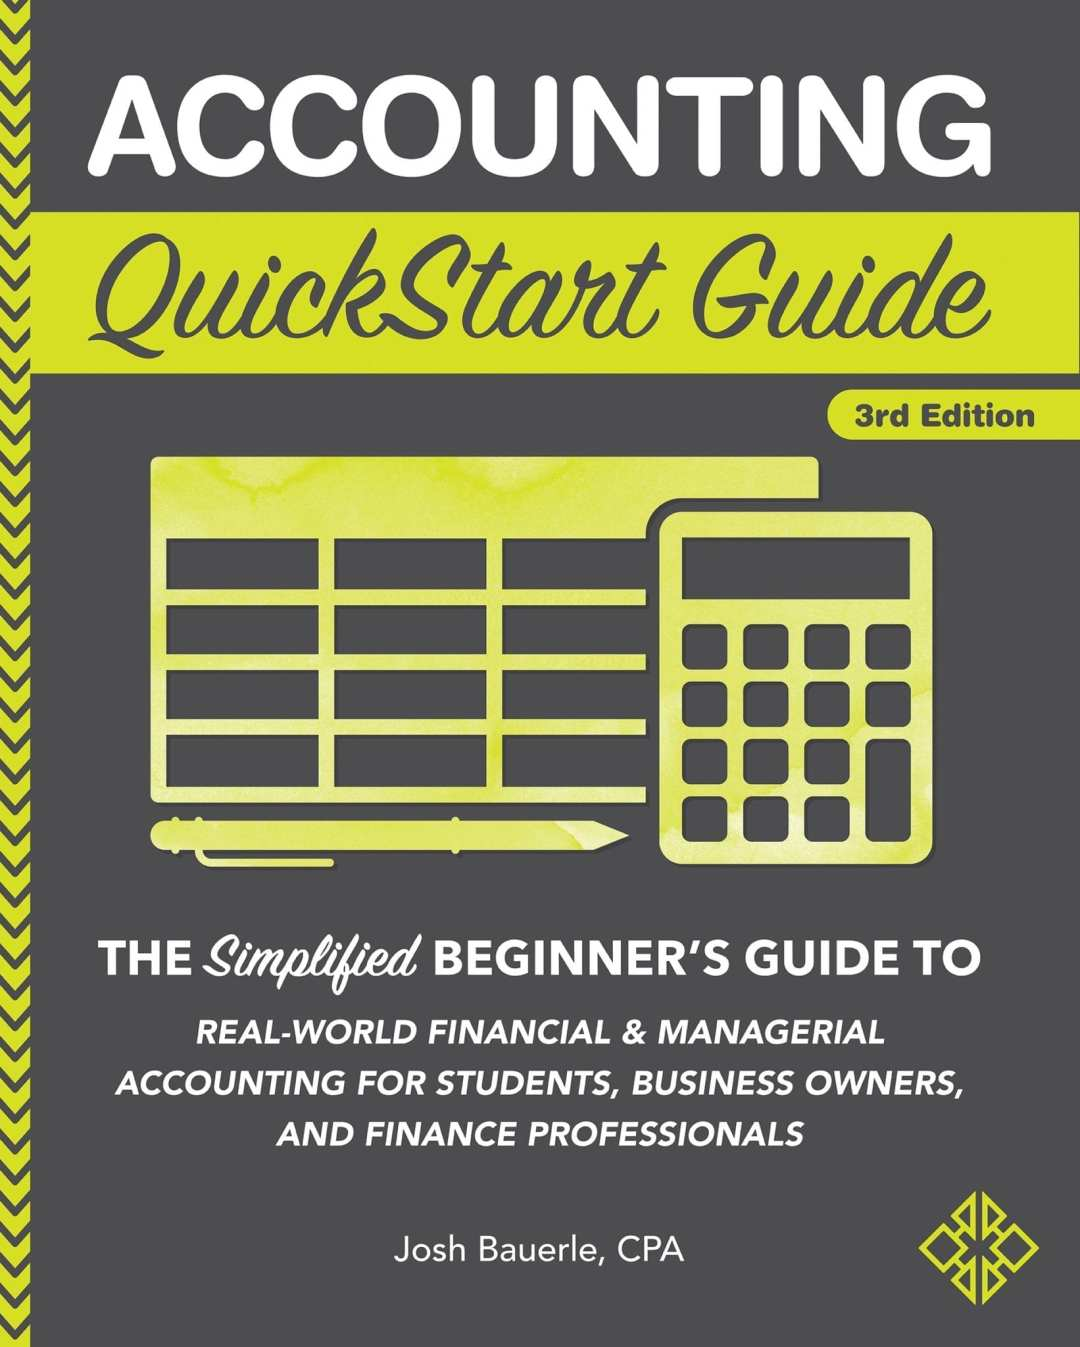 Access the complete media kit for the Accounting QuickStart Guide here.